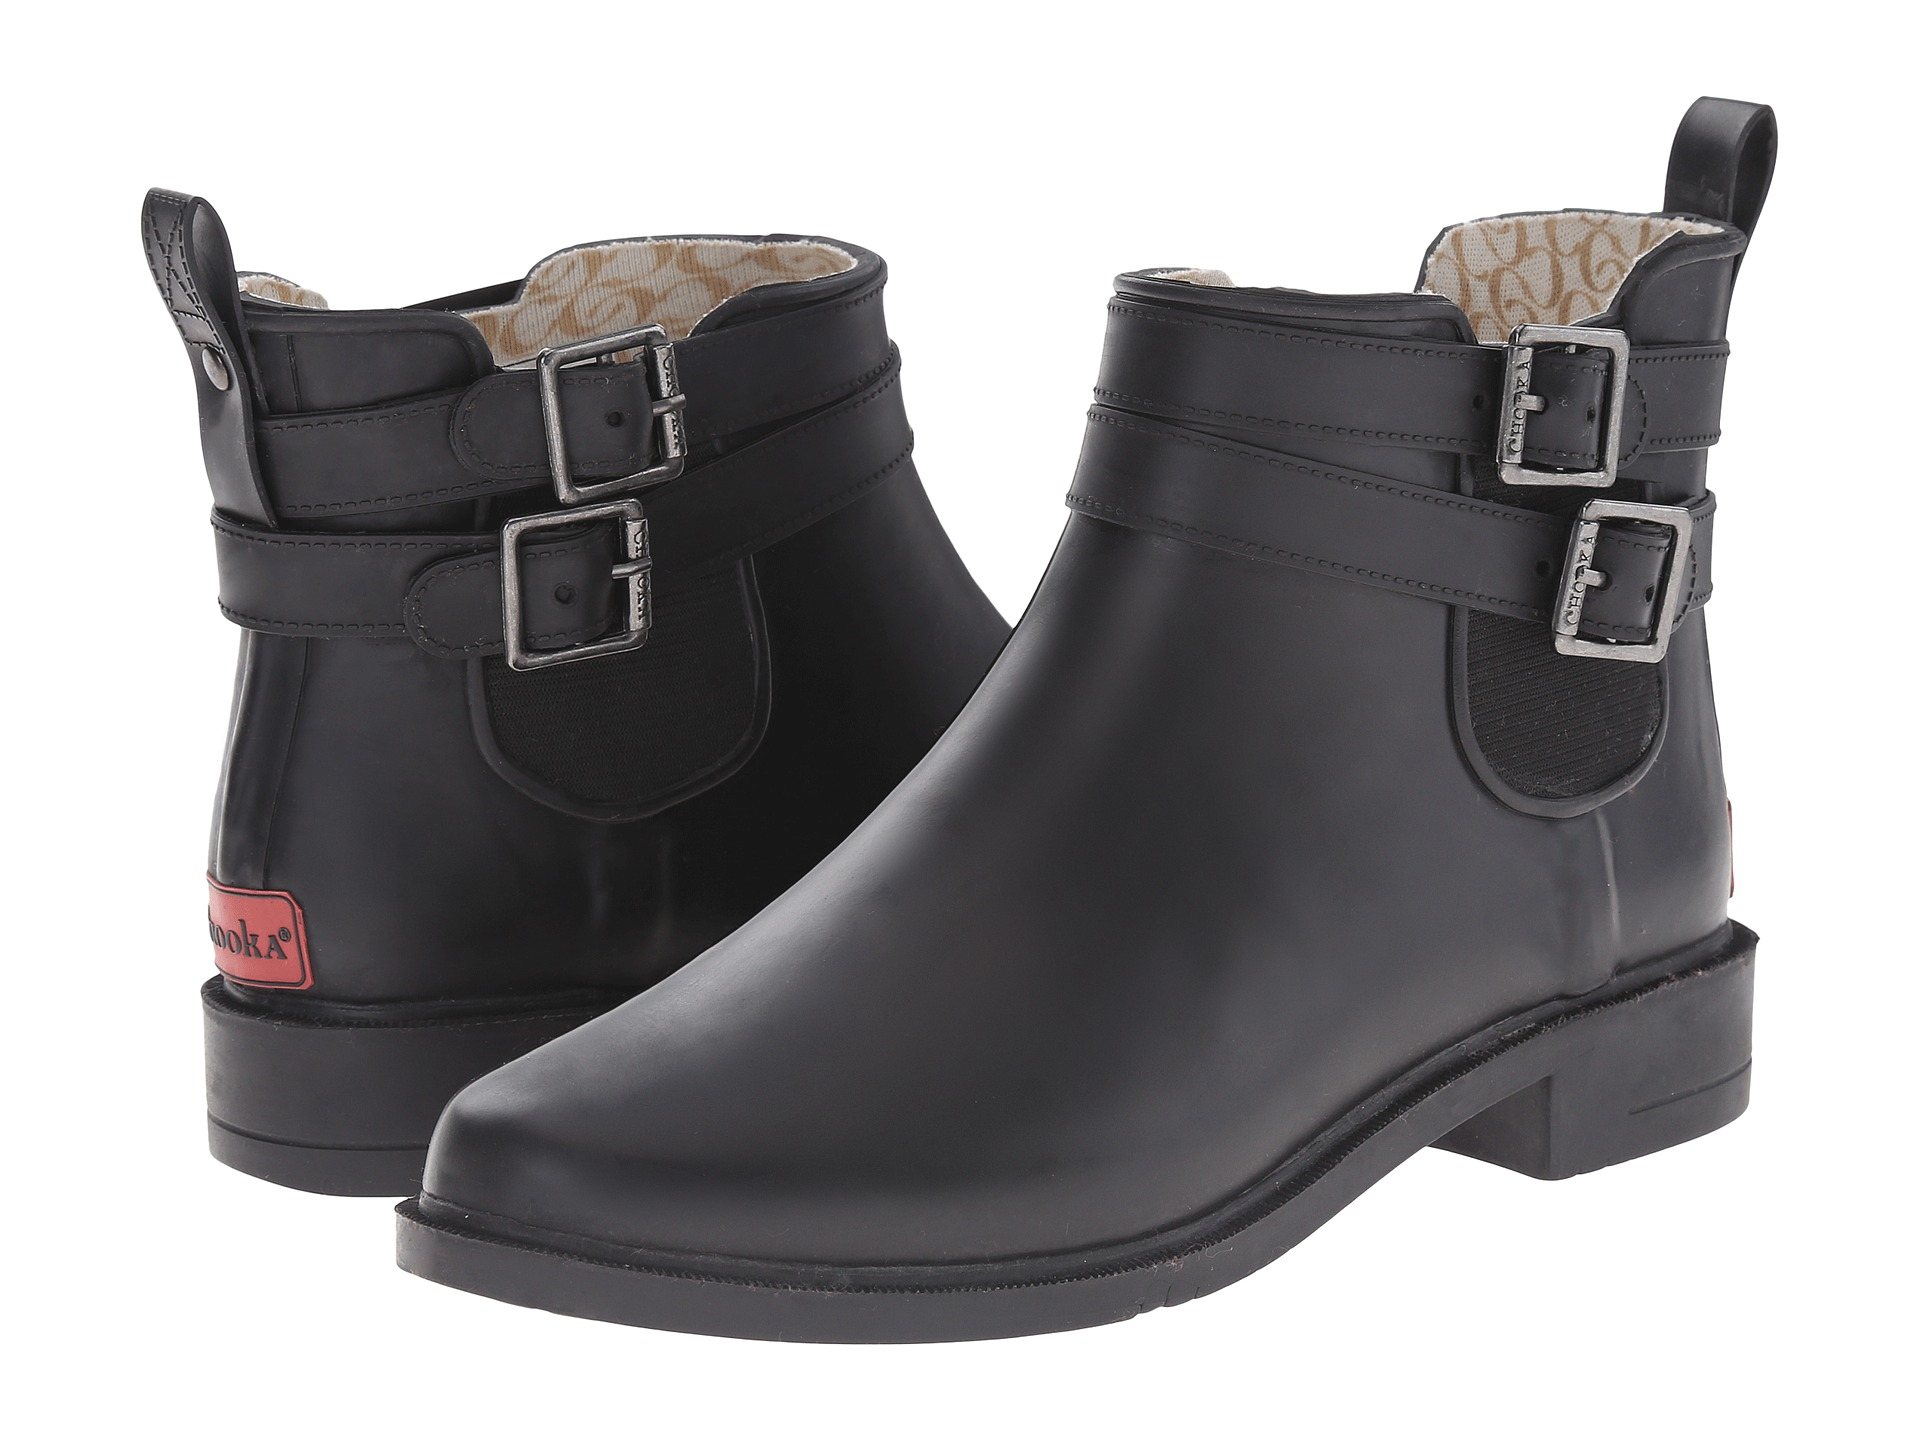 Chooka Dakota Rain Boot - Zappos.com Free Shipping BOTH Ways